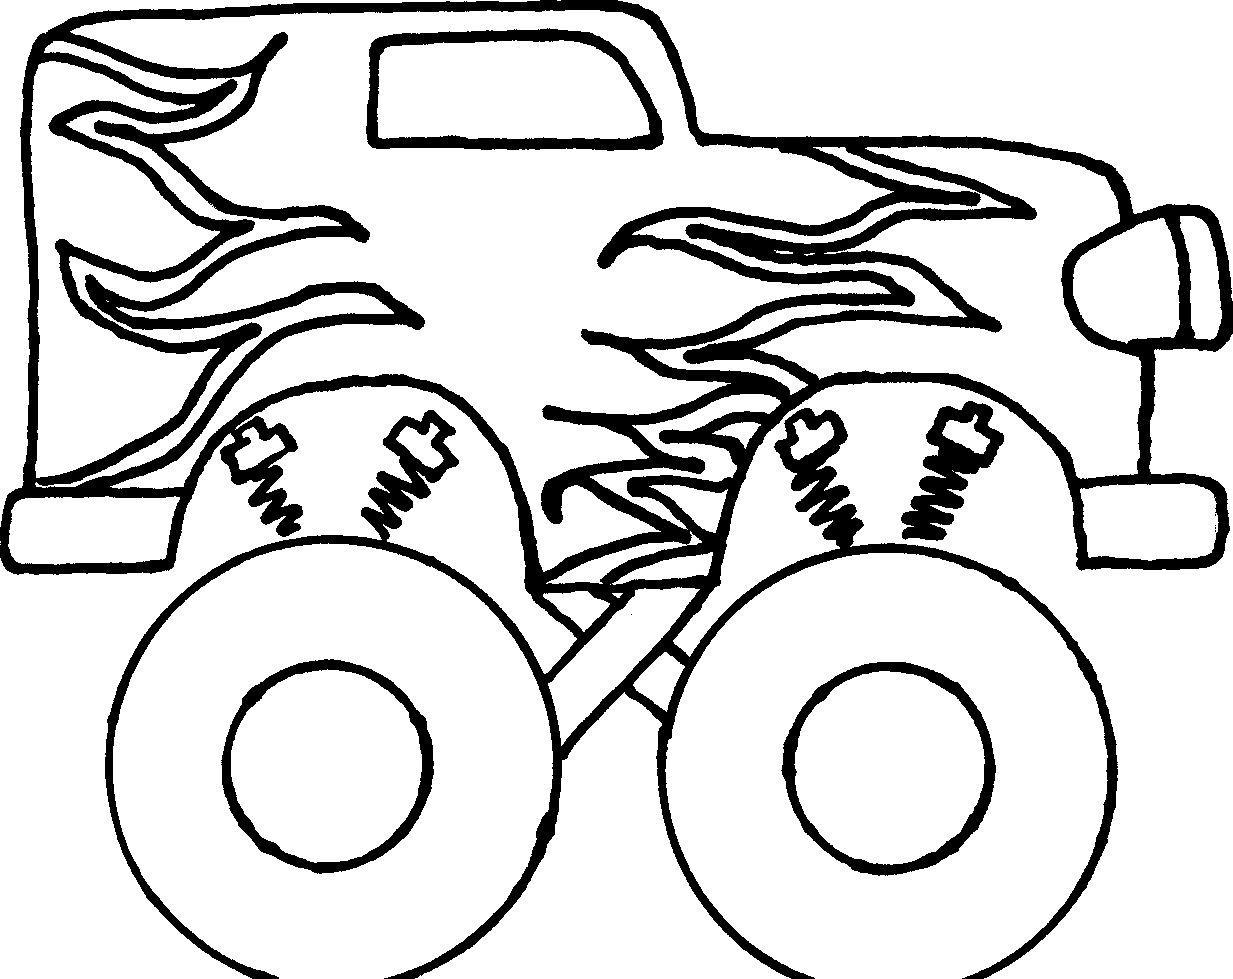 Truck Clipart Black And White Clipart Panda